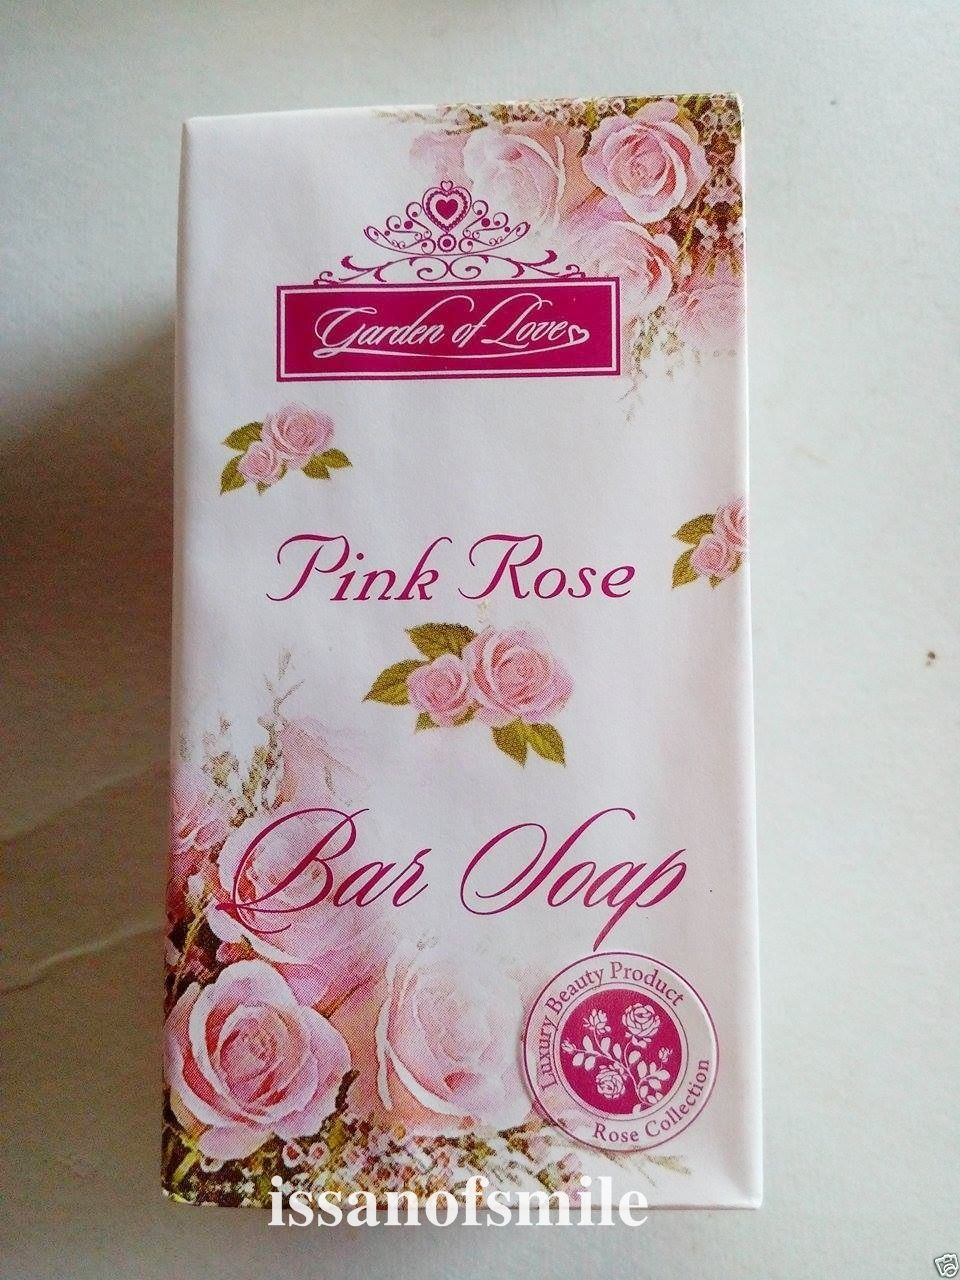 3 Bars Garden of love Pink Rose Bar Soap Cleansing Soft Skin & Smooth